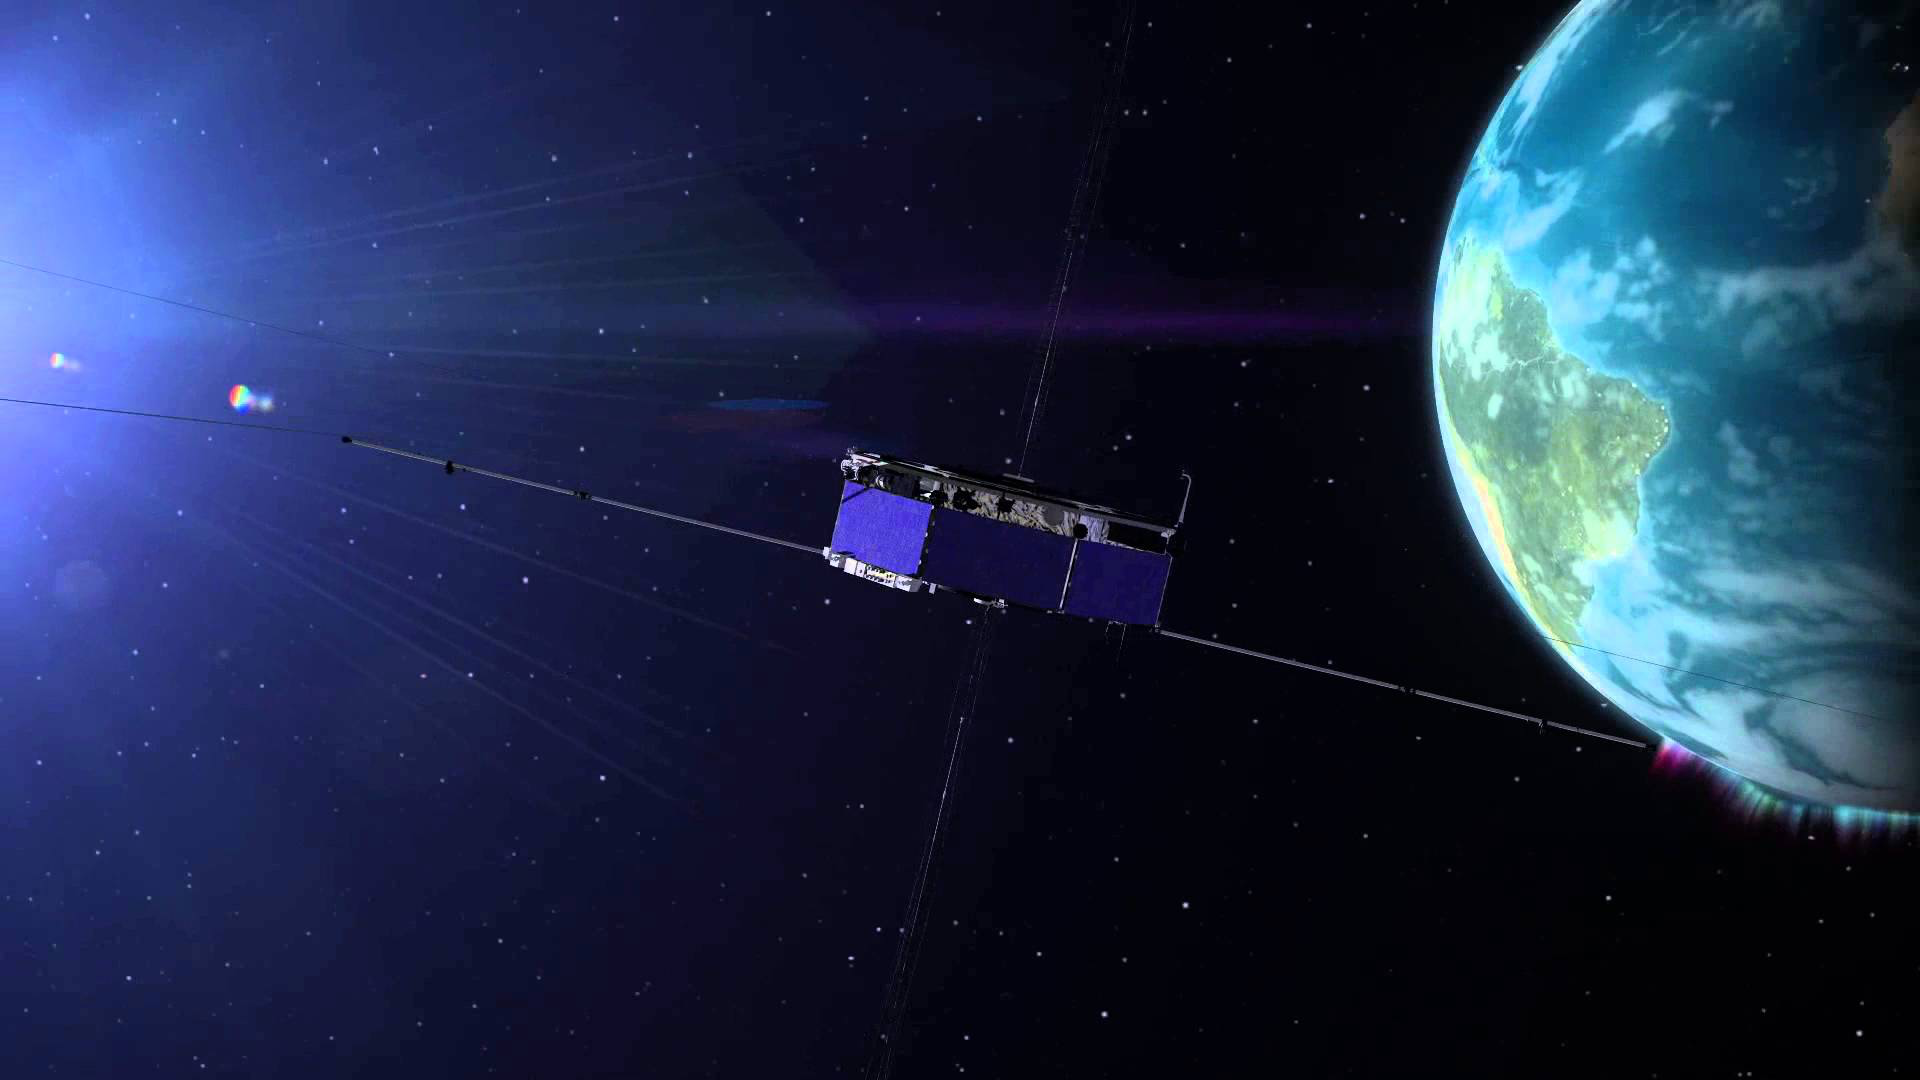 The four identical spacecraft of NASA's Magnetospheric Multiscale, or MMS, mission (one of which is illustrated here) fly through the boundaries of Earth's magnetic field to study an explosive process of magnetic reconnection. Thought to be the driver behind everything from solar flares to aurora, magnetic reconnection creates a sudden reconfiguration of magnetic fields, releasing huge amounts of energy in the process. - Image    Credits:  NASA's Goddard Space Flight Center